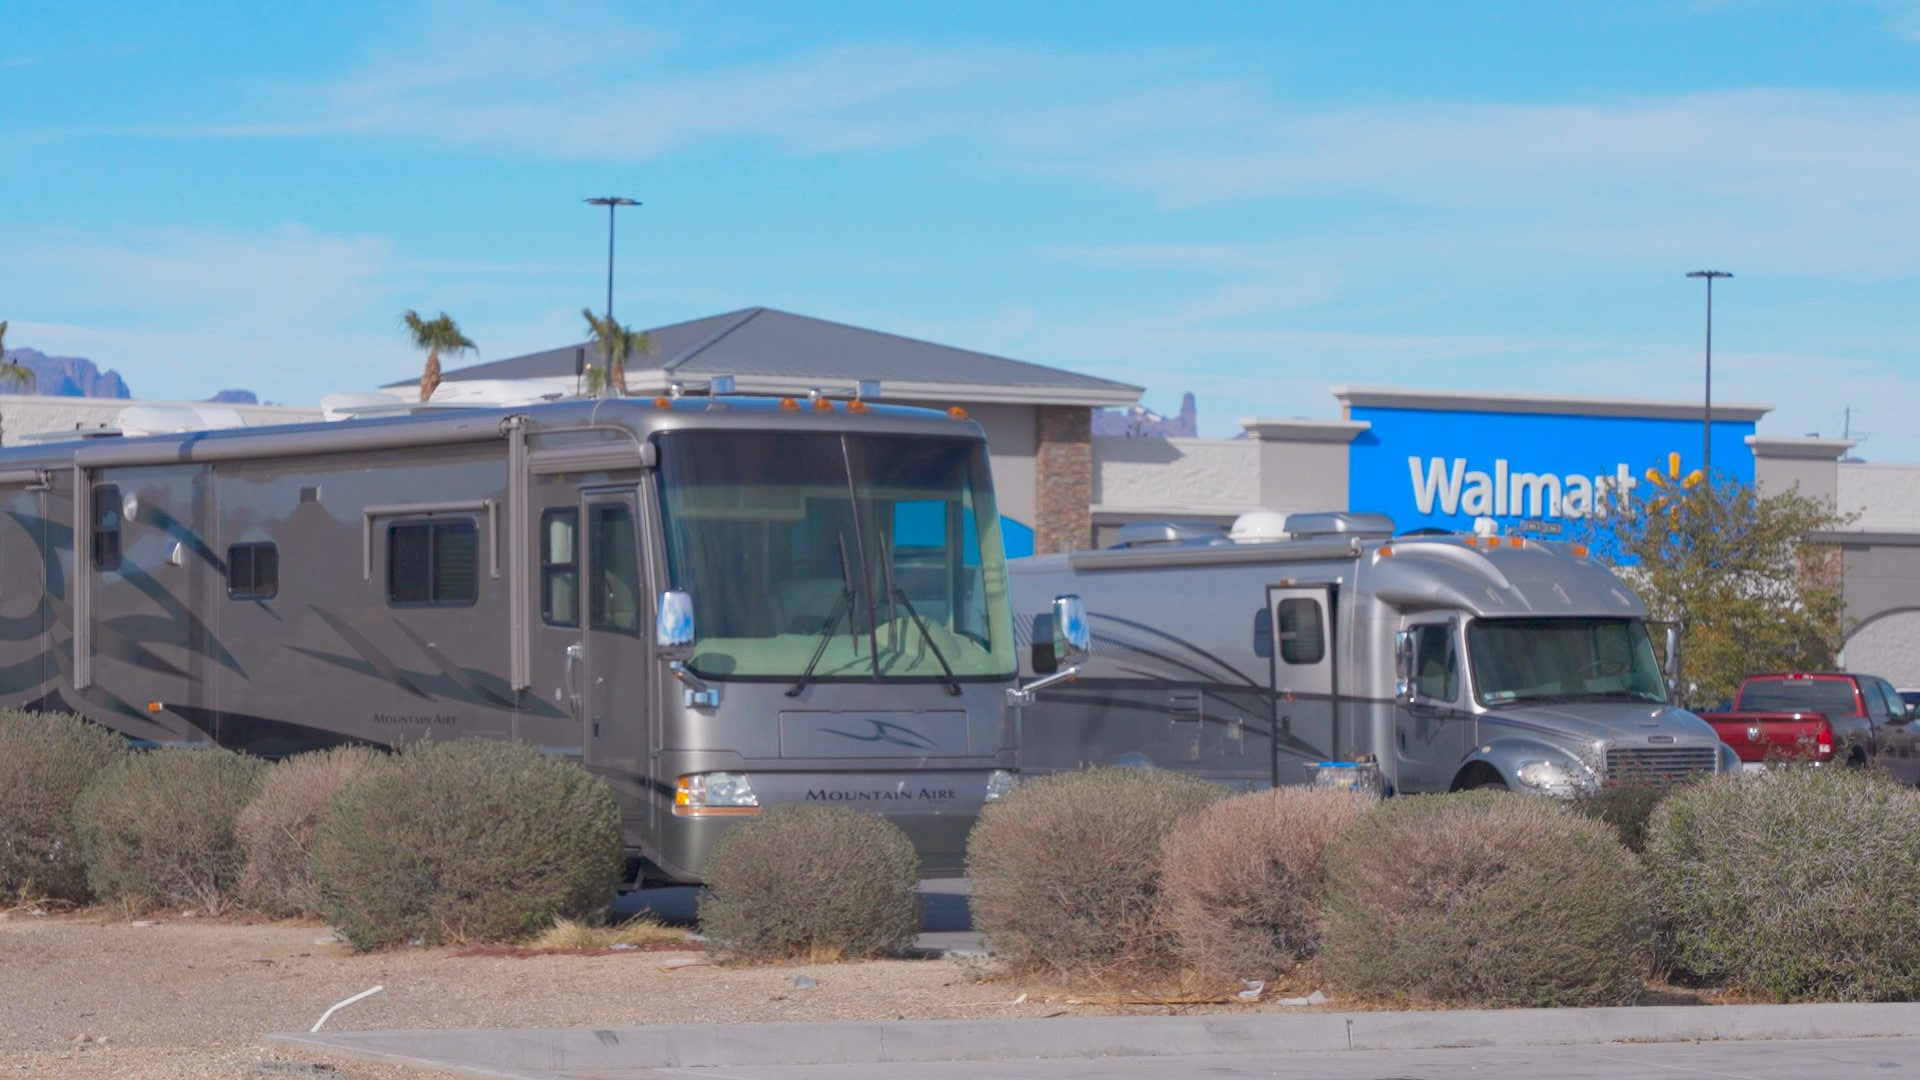 Walmarts are a great fre overnight rv parking location